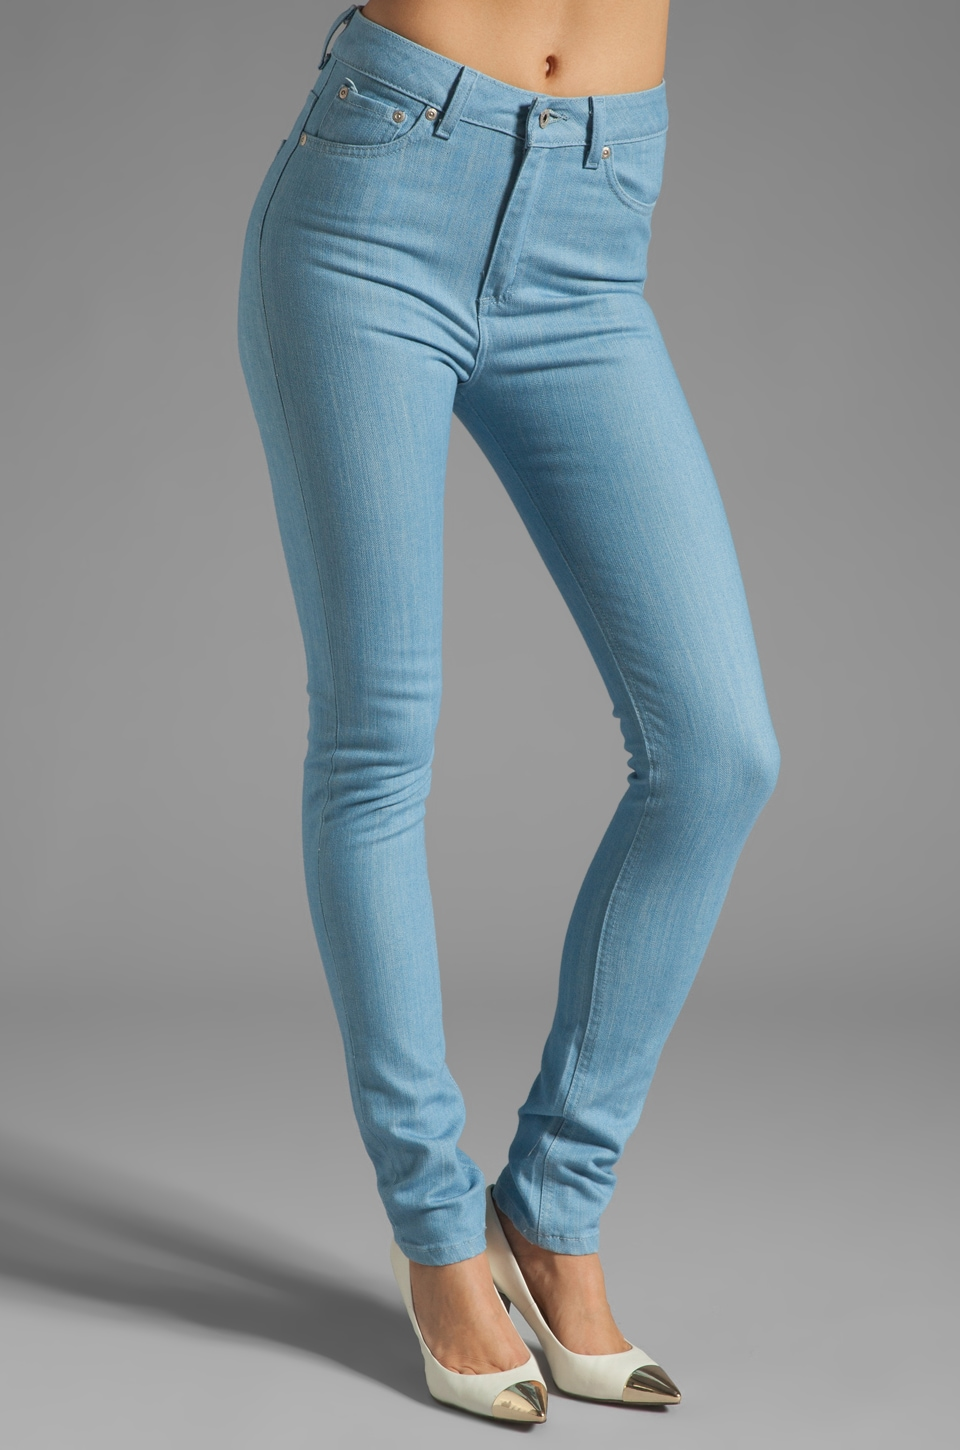 Naked & Famous Denim The High Skinny 11 oz in Light Blue Stretch